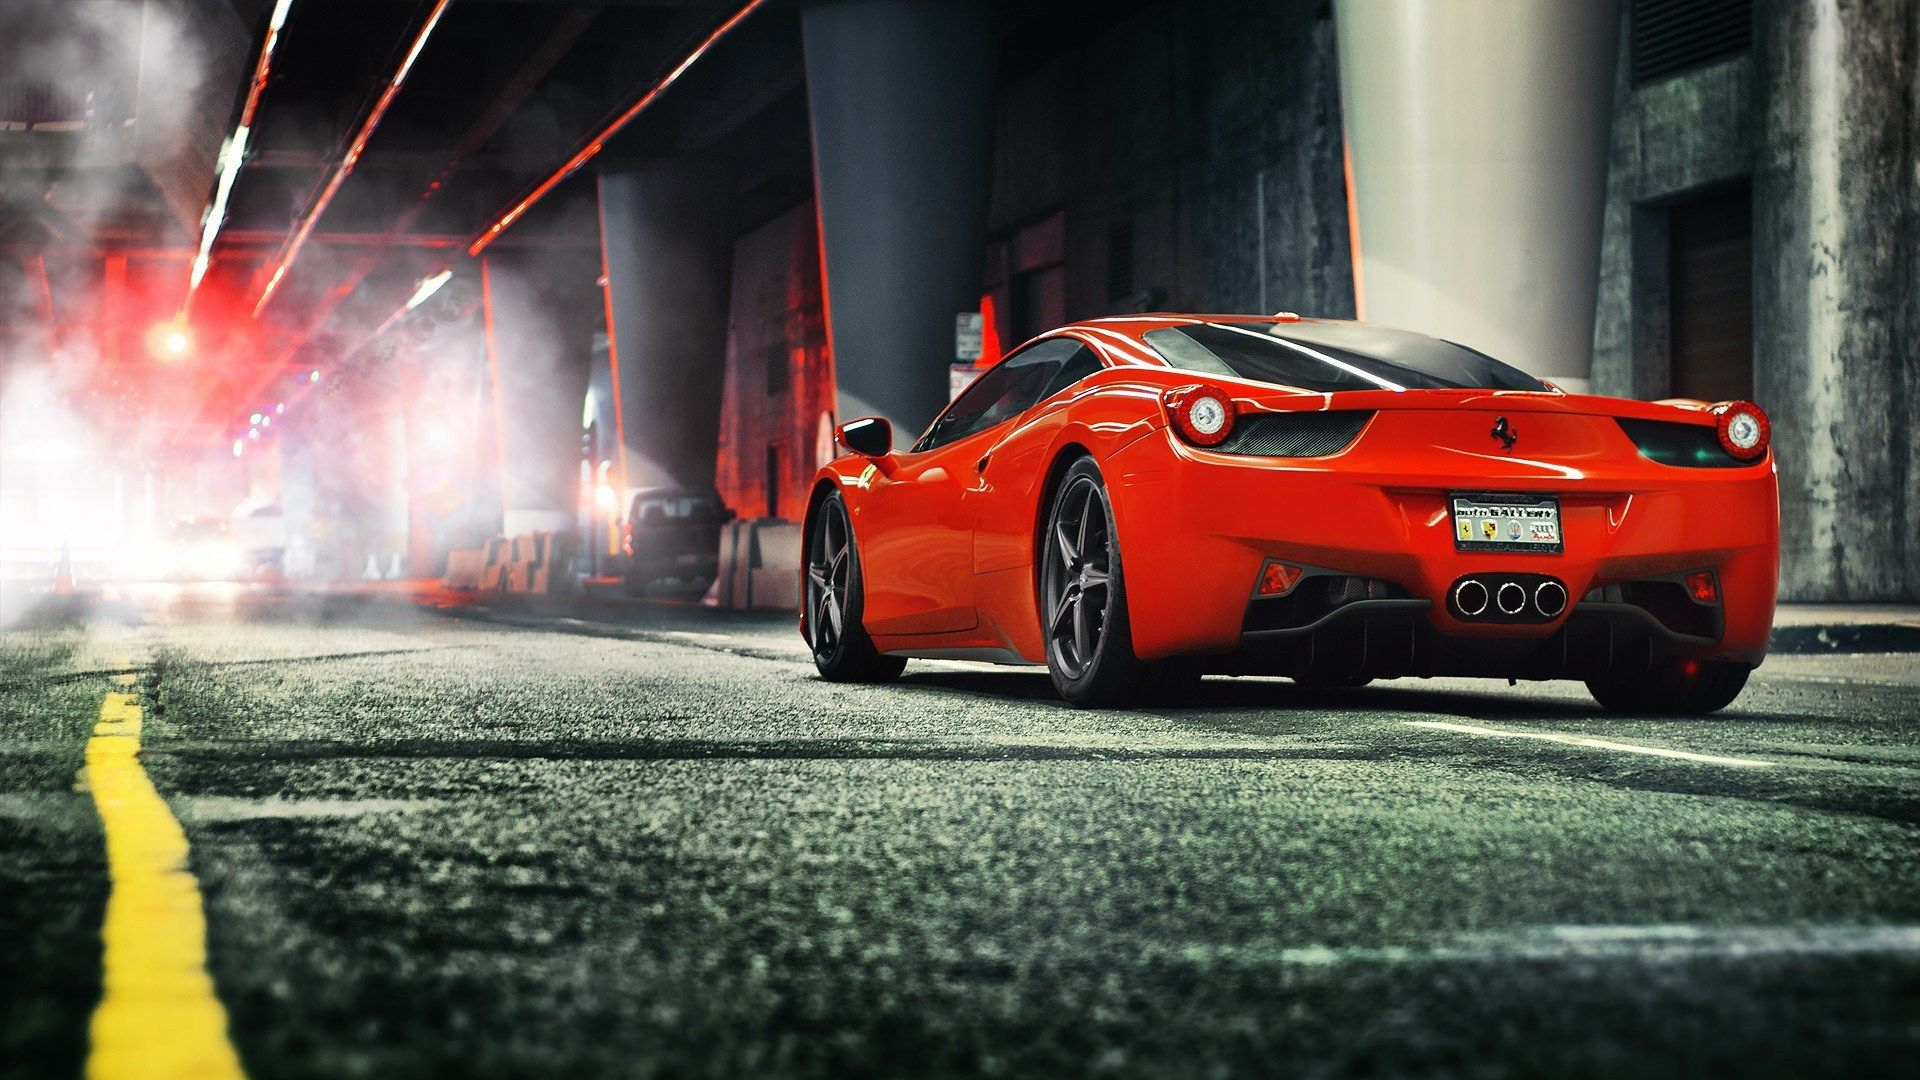 Ferrari Wallpaper High Quality Resolution Wc5 With Images